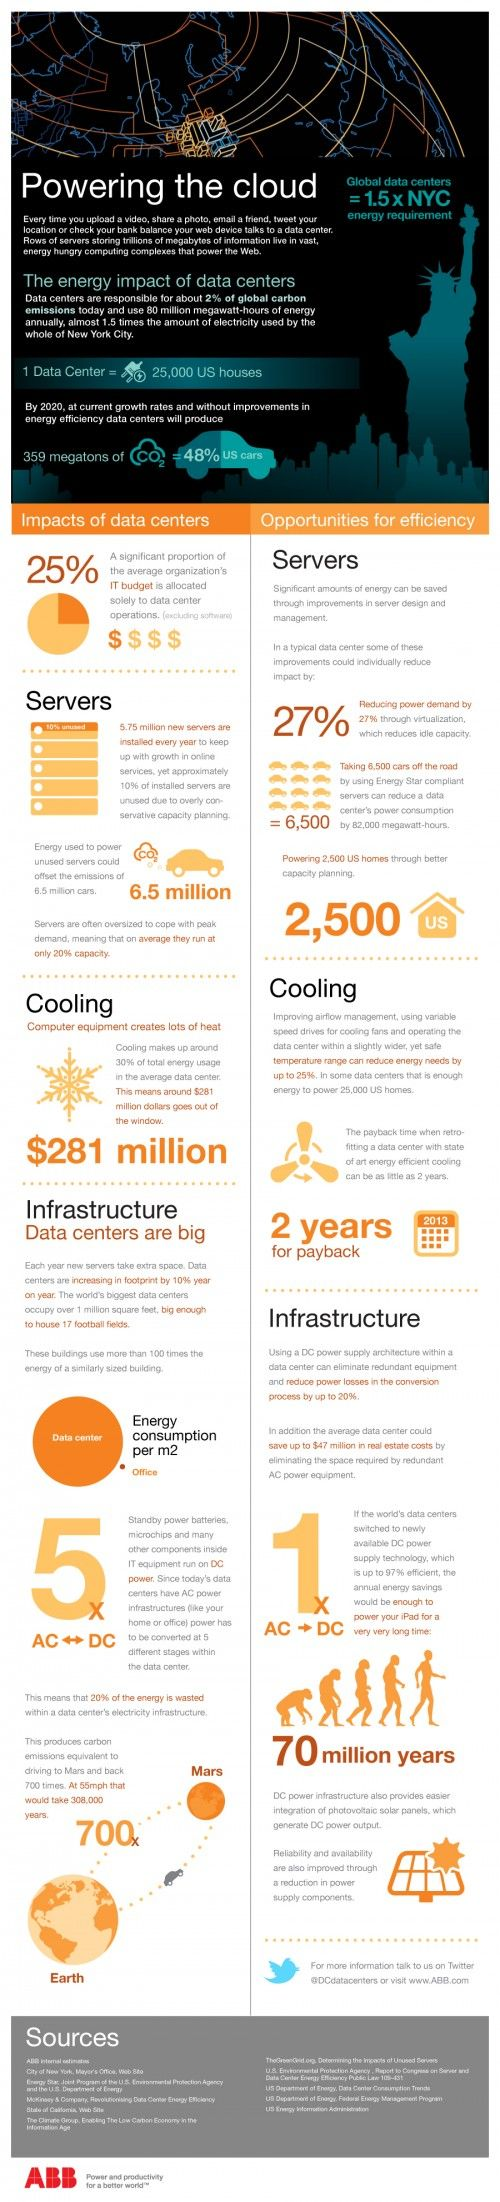 infographic the energy impact of data centers